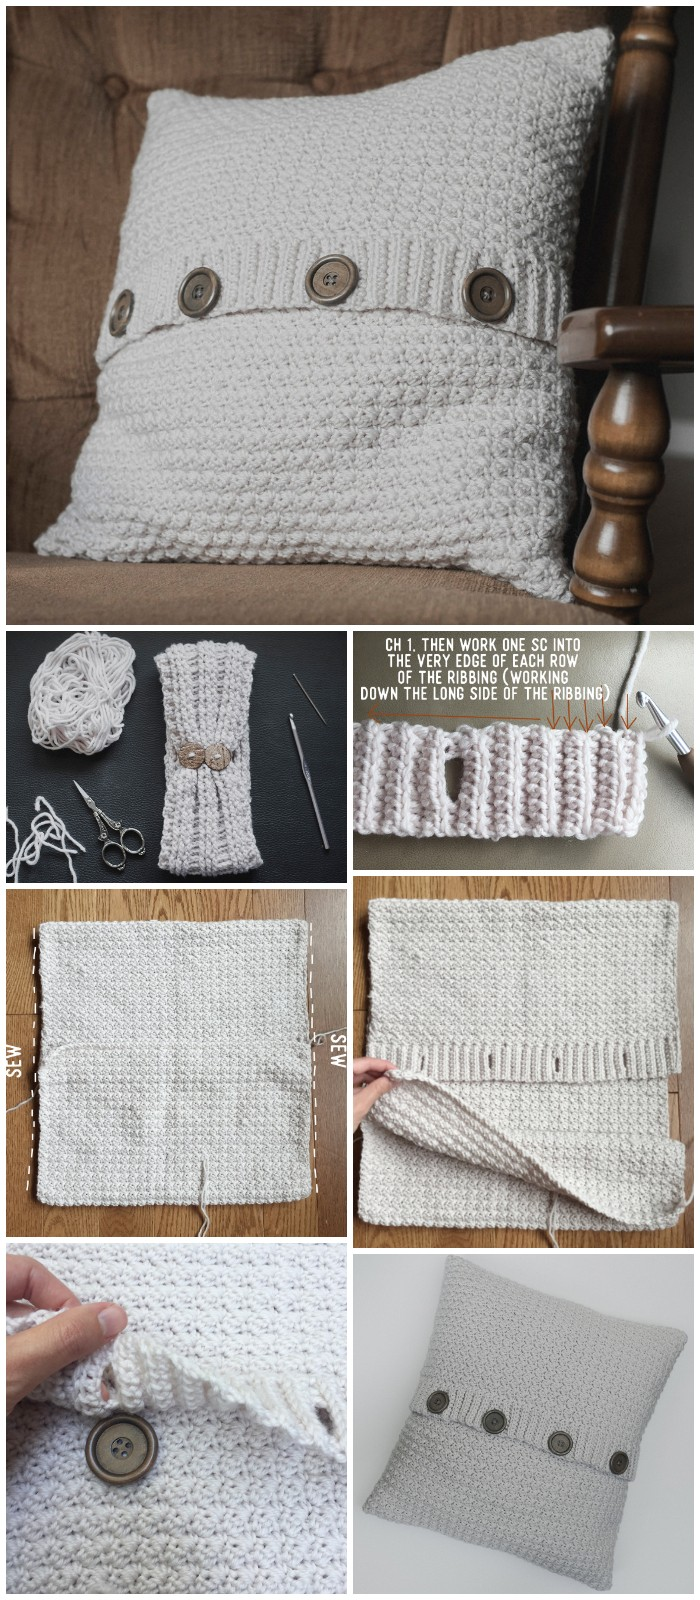 Free Crochet Pattern for the Pillow Cardigan